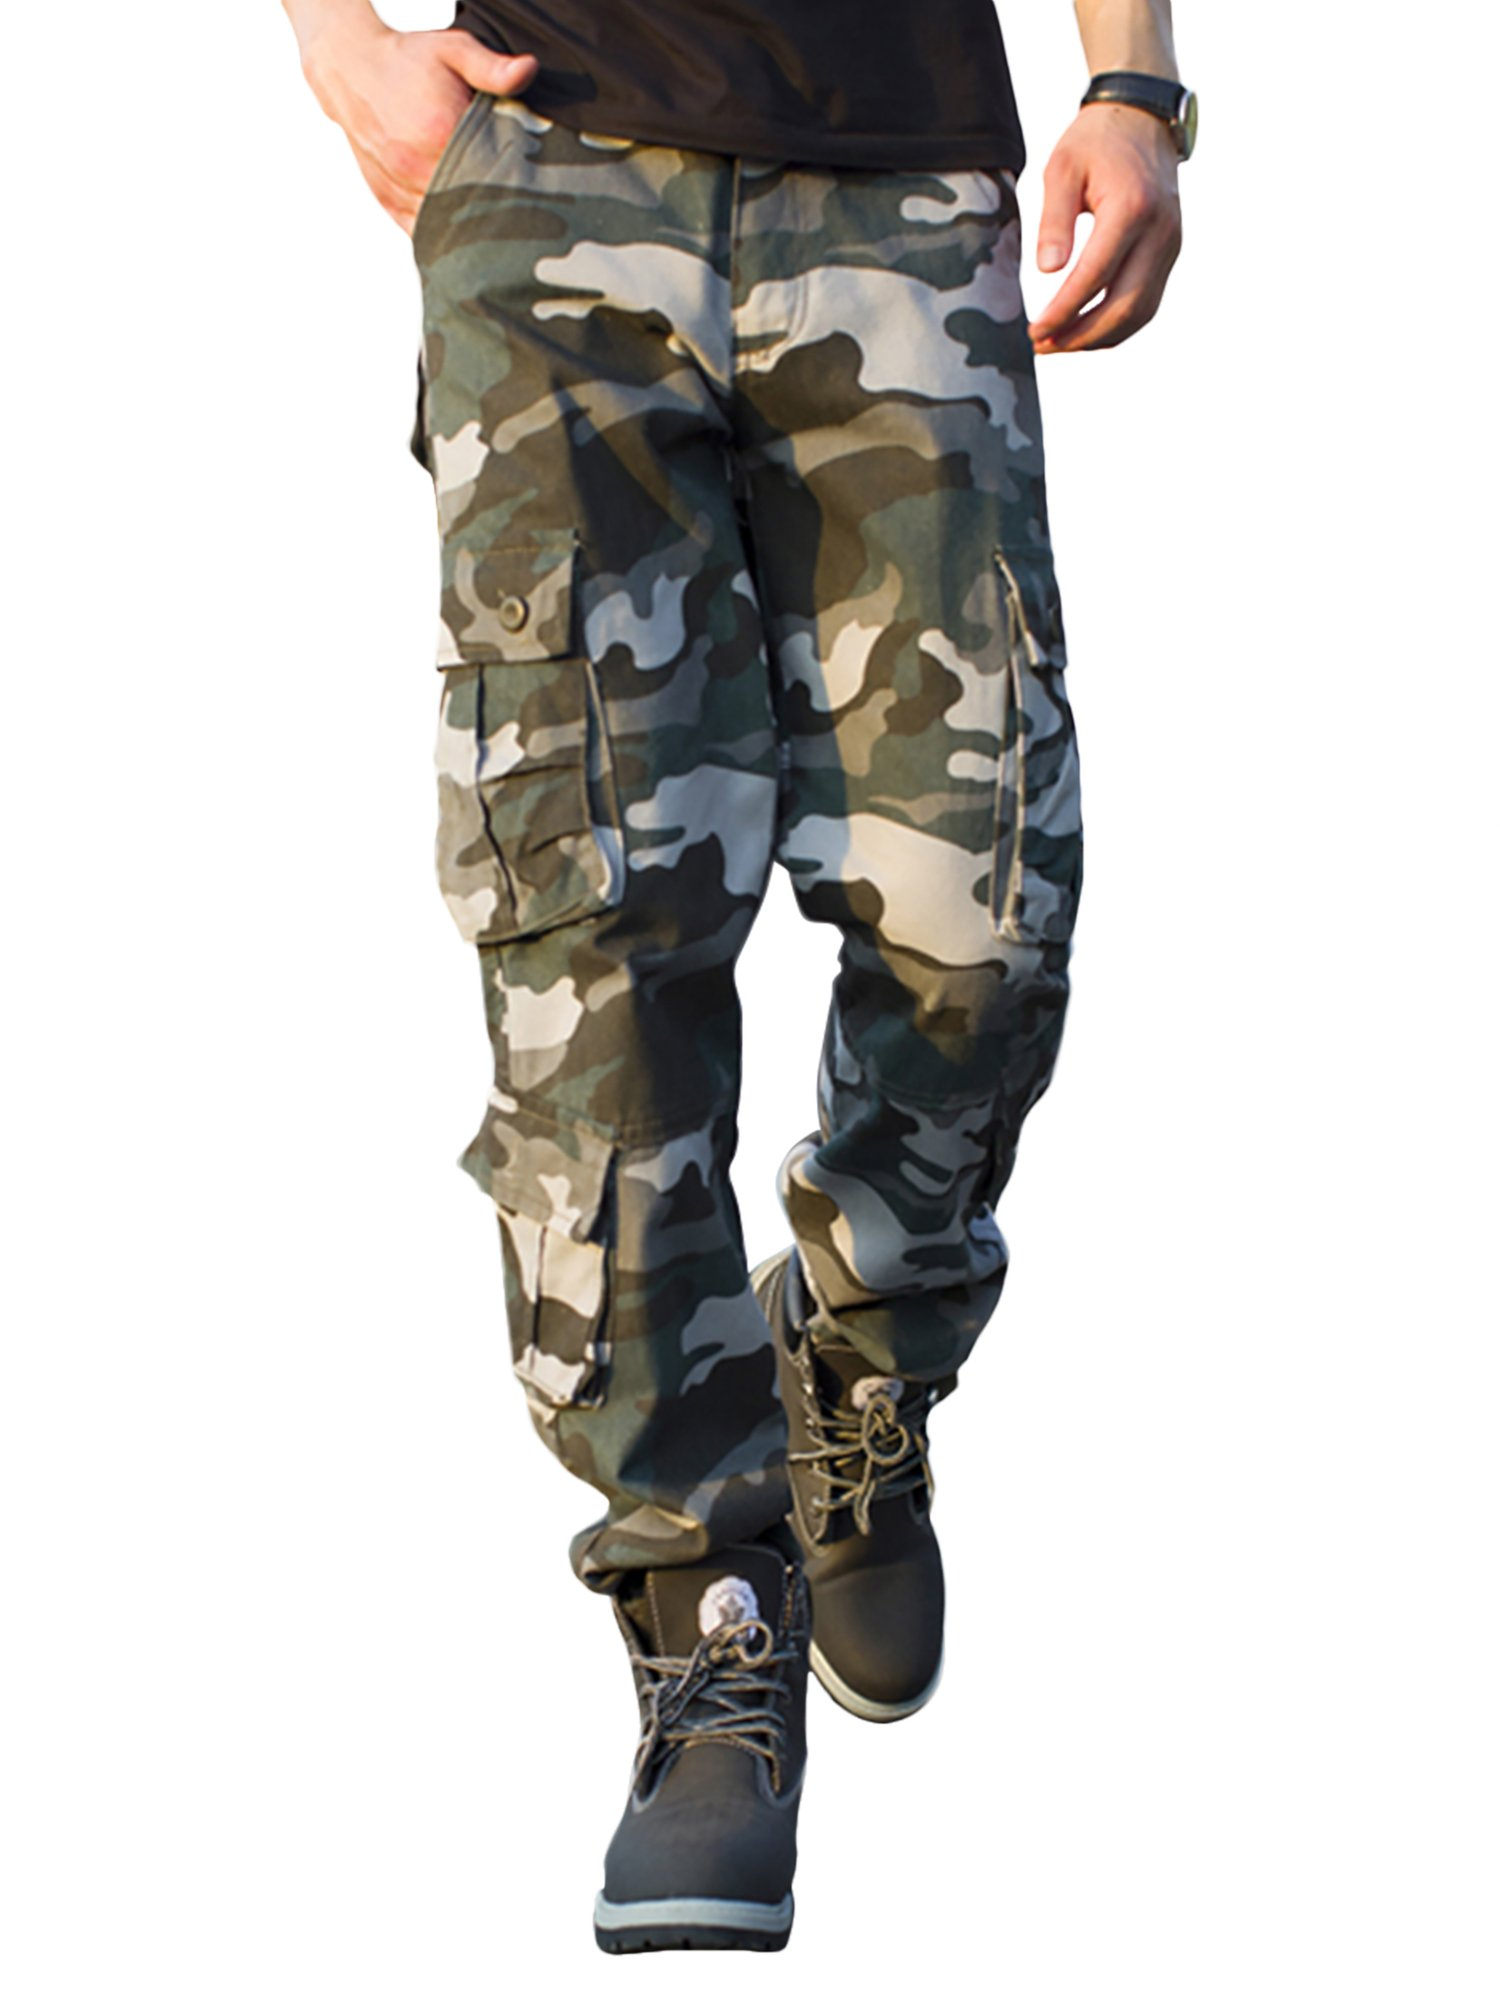 CloSoul Direct Men's Military Cargo Pants Loose Fit Wild Camo Hunting Combat Trousers Daily Basic Work Pants by CloSoul Direct (Image #1)